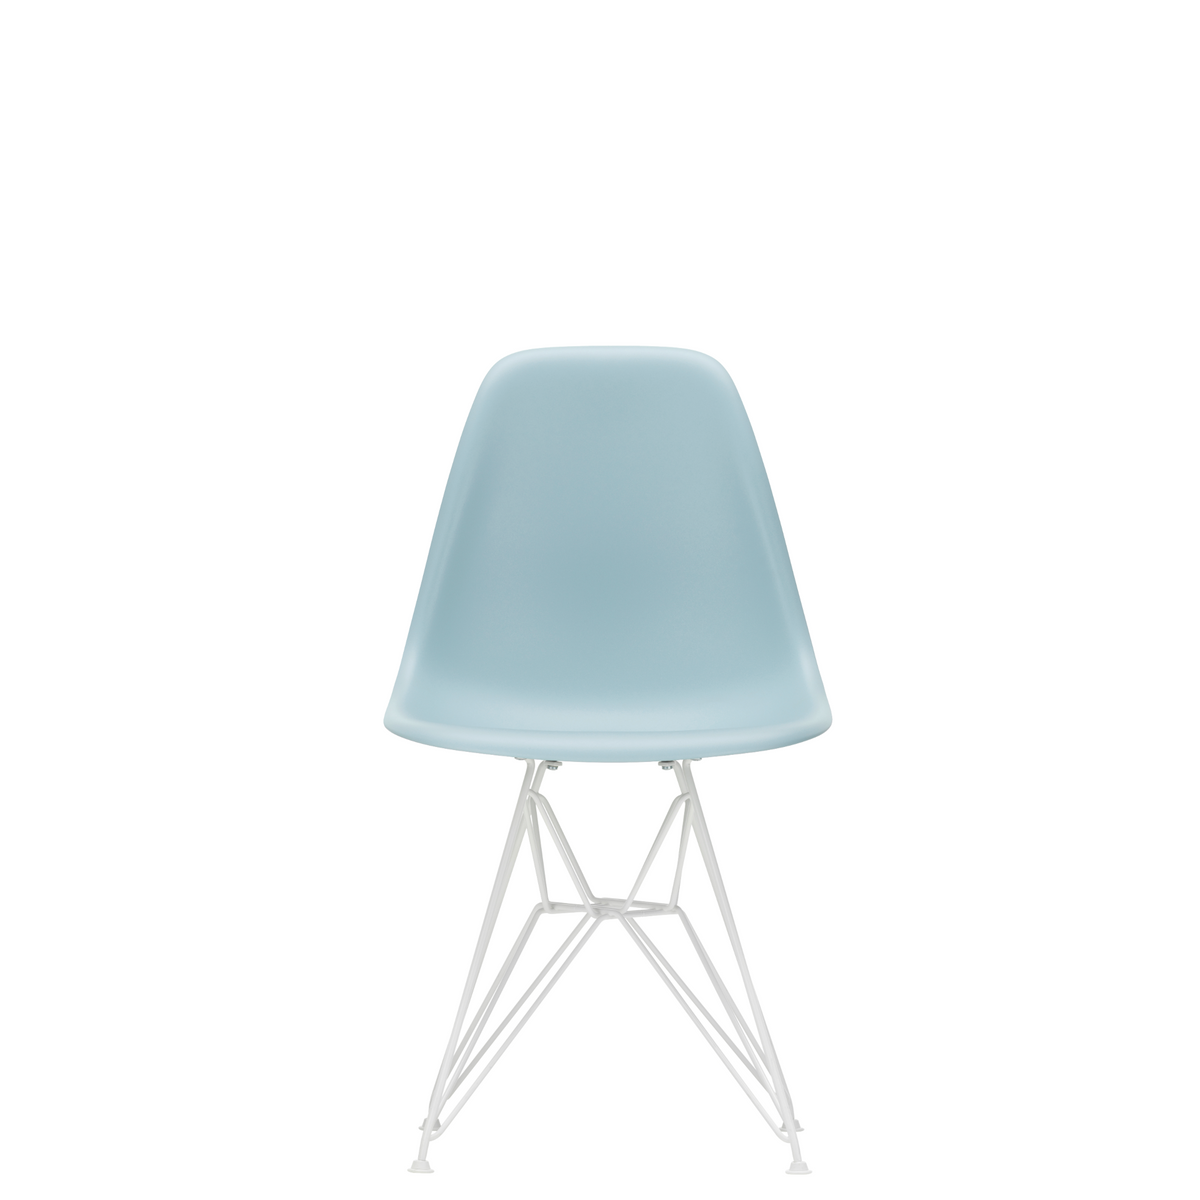 Vitra Eames Plastic Side Chair DSR Powder Coated for Outdoor Use Ice Grey Shell White Powdercoated Base